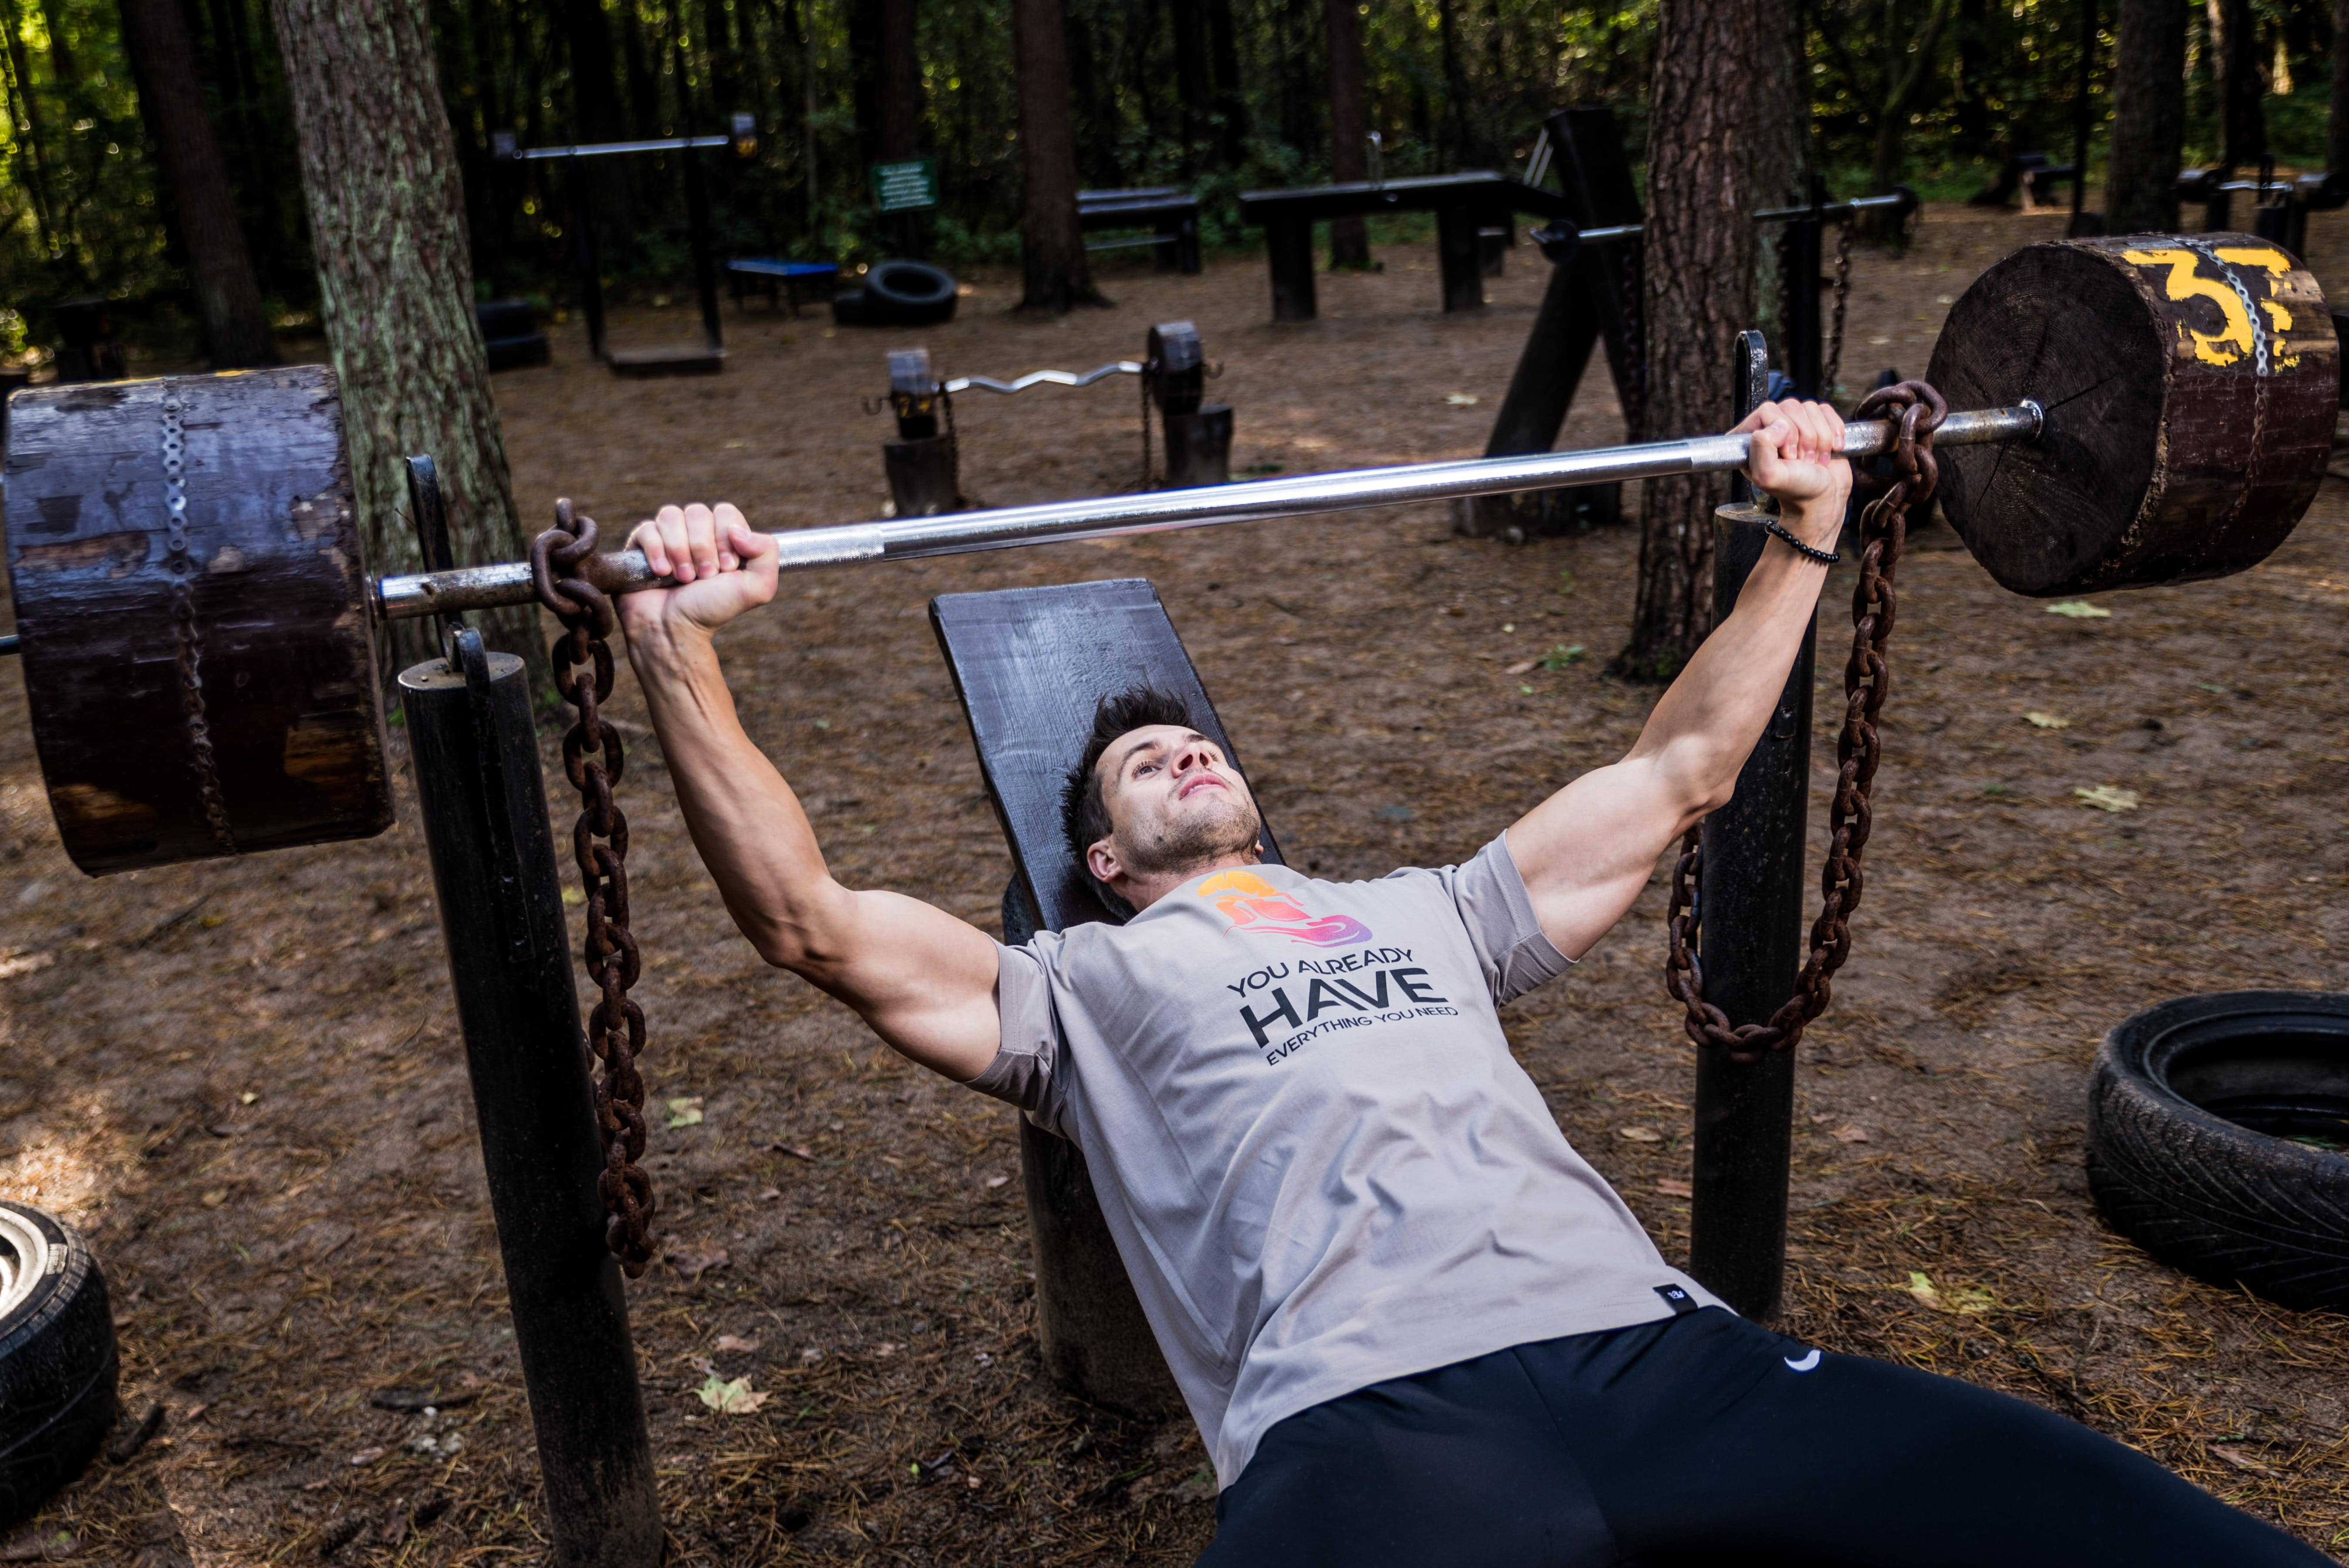 The specified angle will bring focus to the upper portion of your chest instead of working on the whole pectoral region